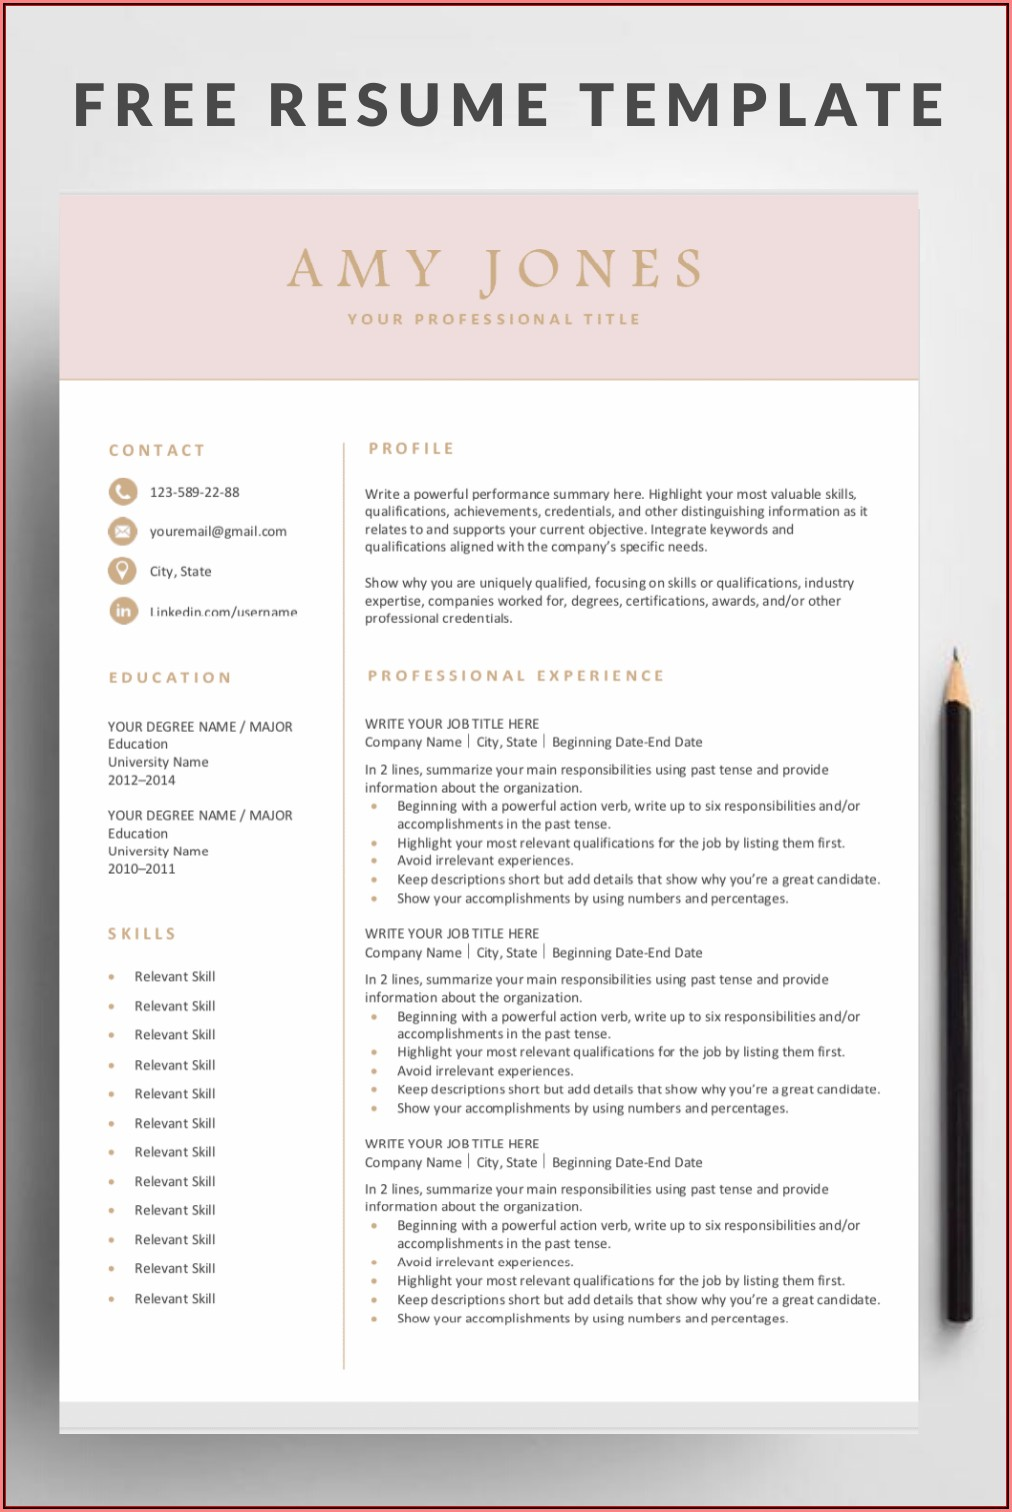 Editable Resume Free Download